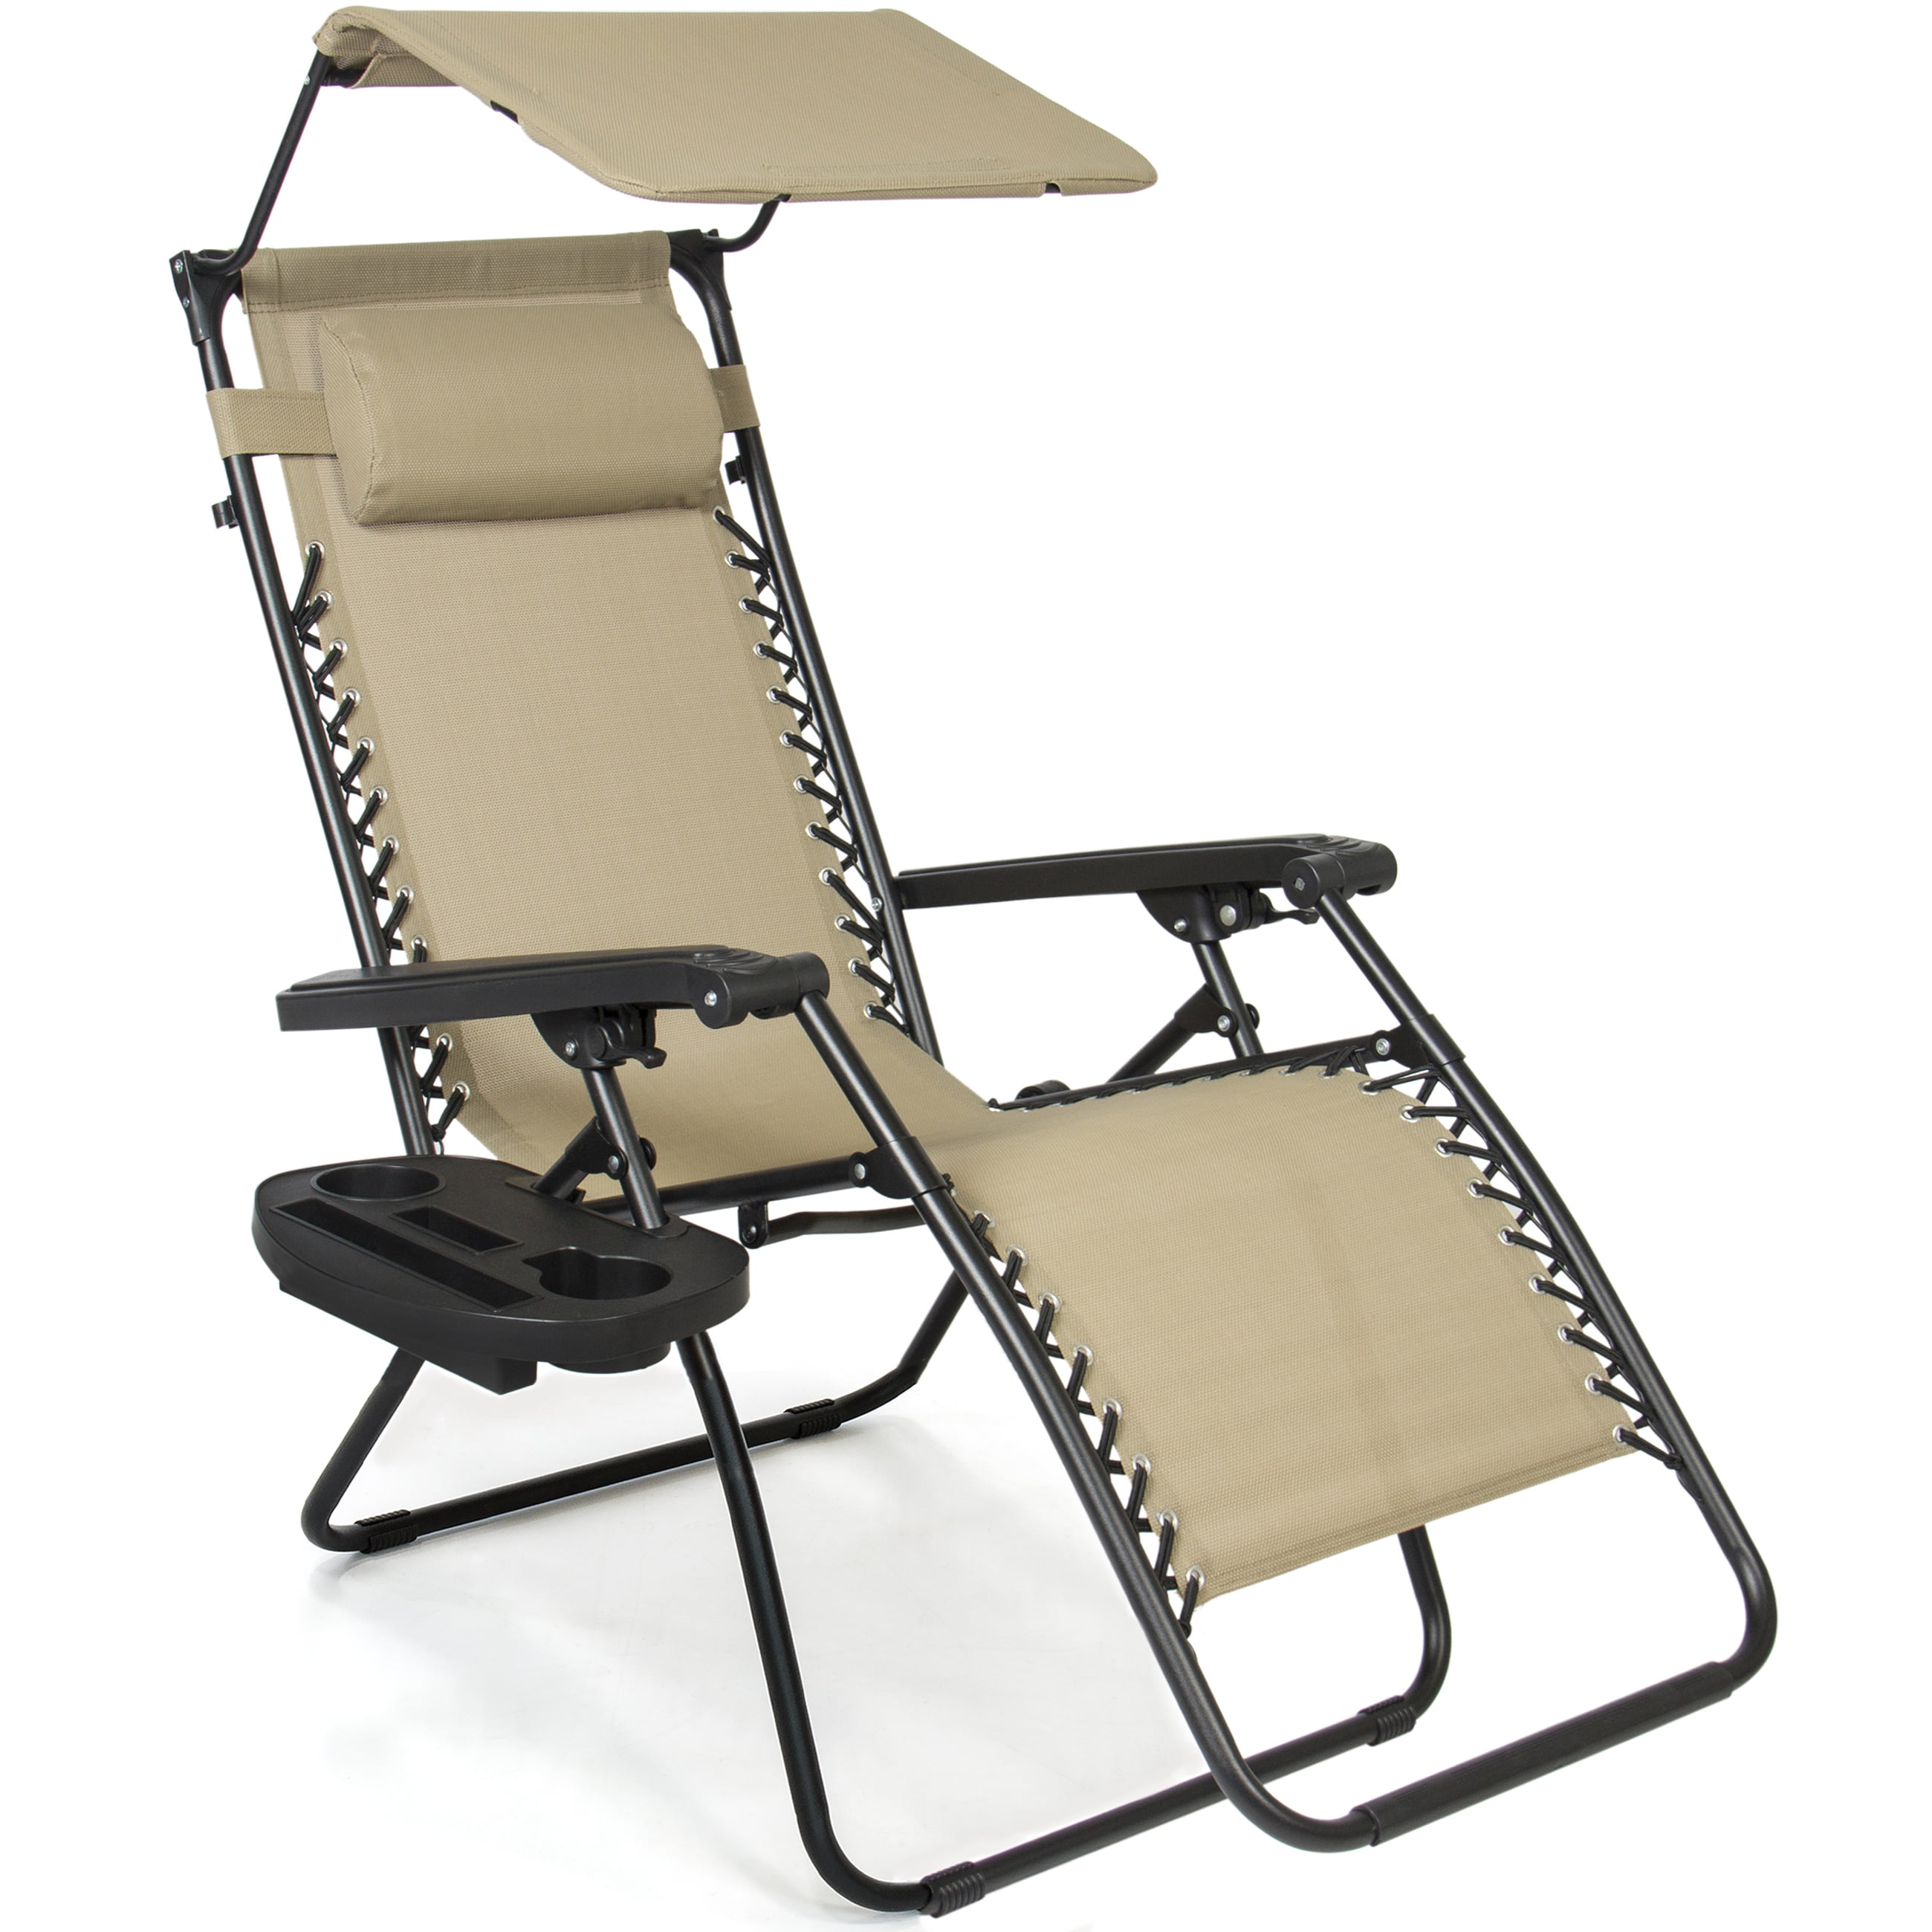 Folding Zero Gravity Recliner Lounge Chair With Canopy Shade